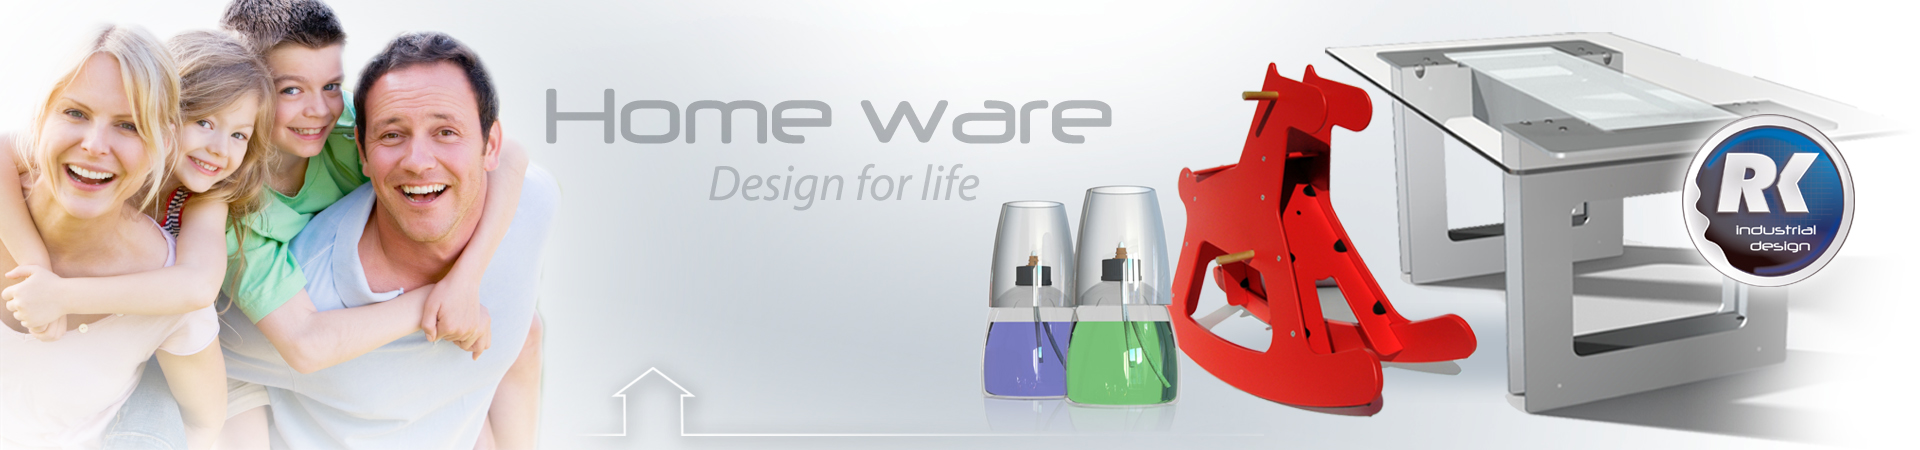 HOME-WARE3-PL